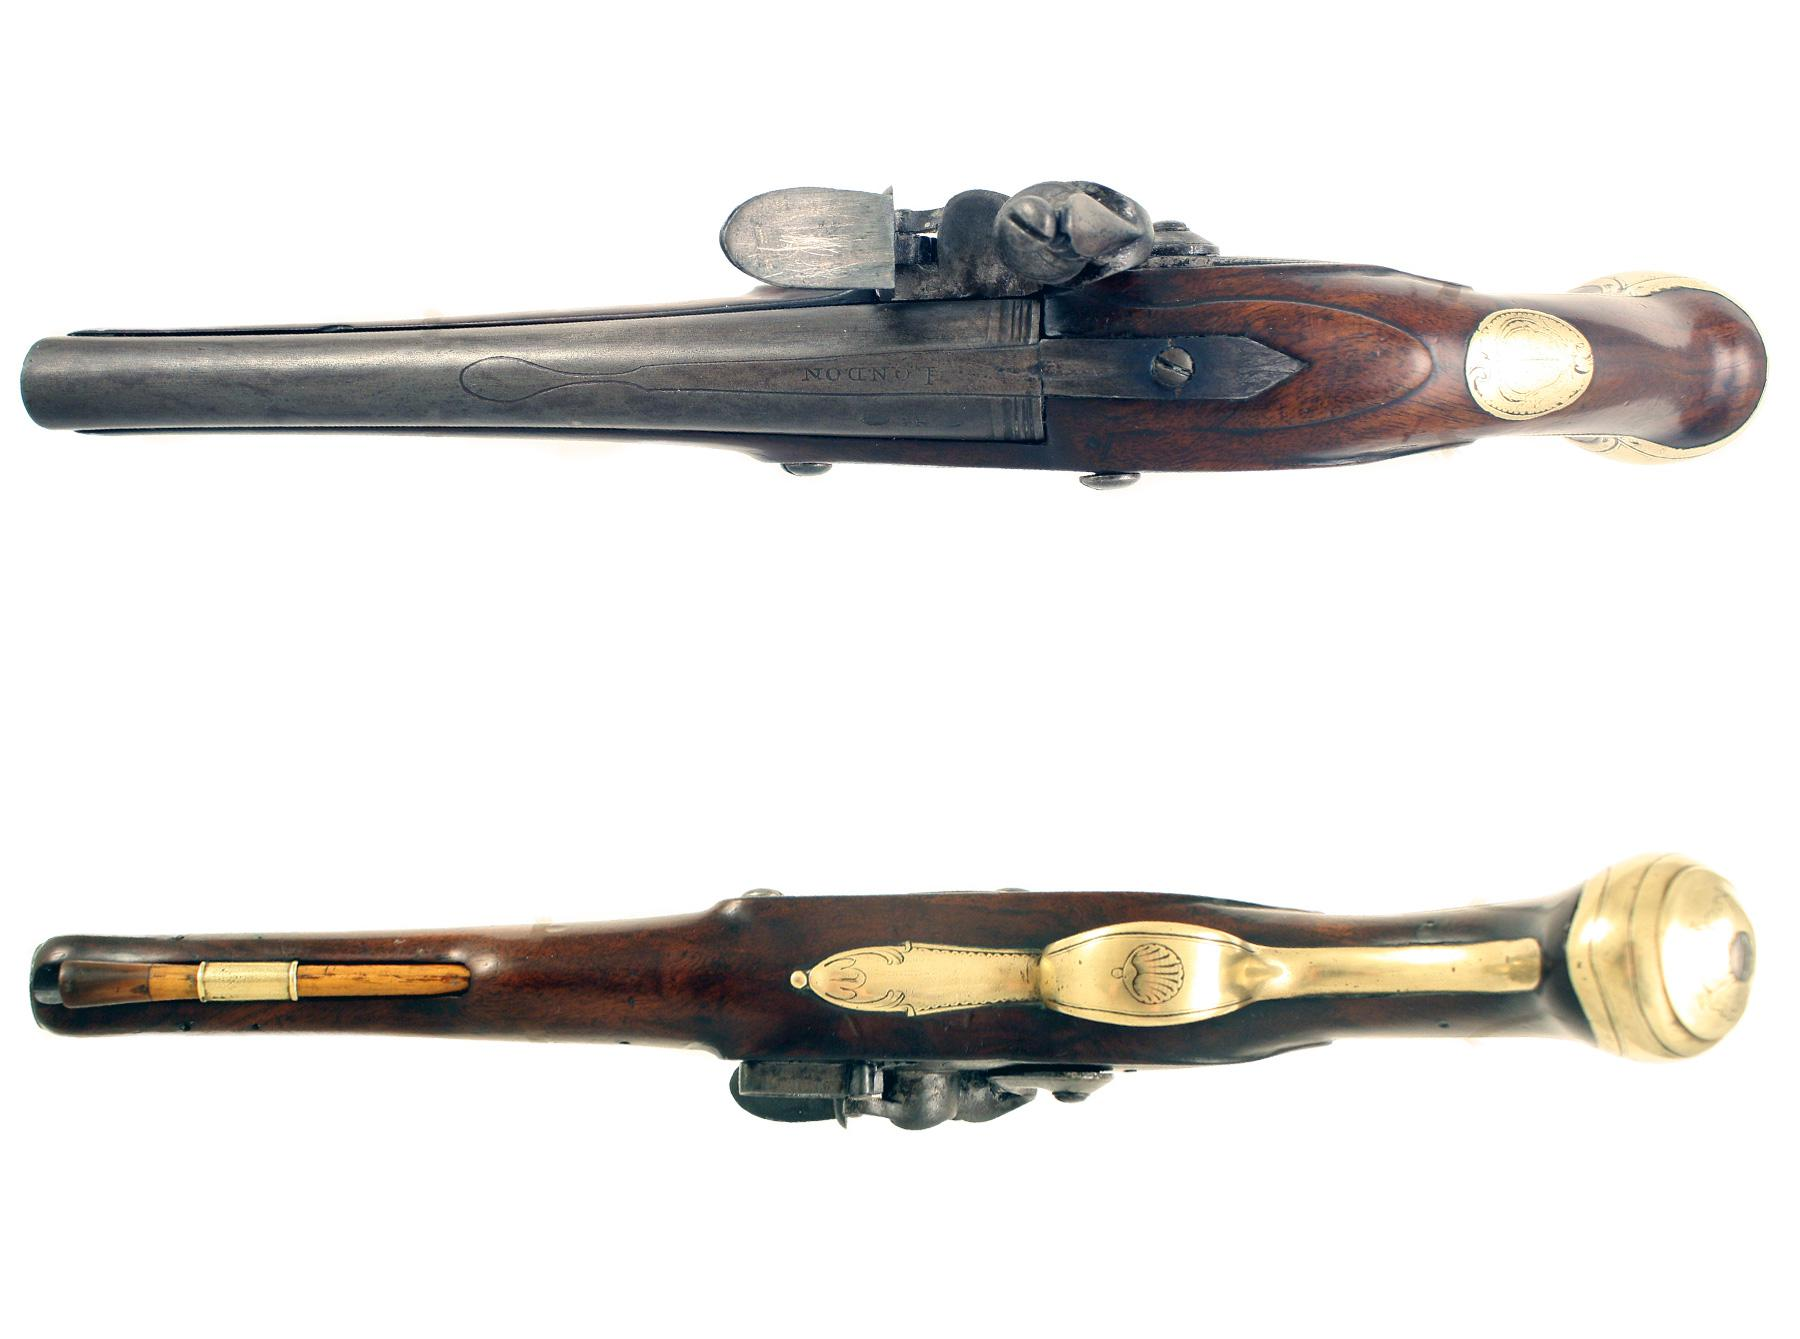 A Flintlock Holster Pistol by T. Jones of London